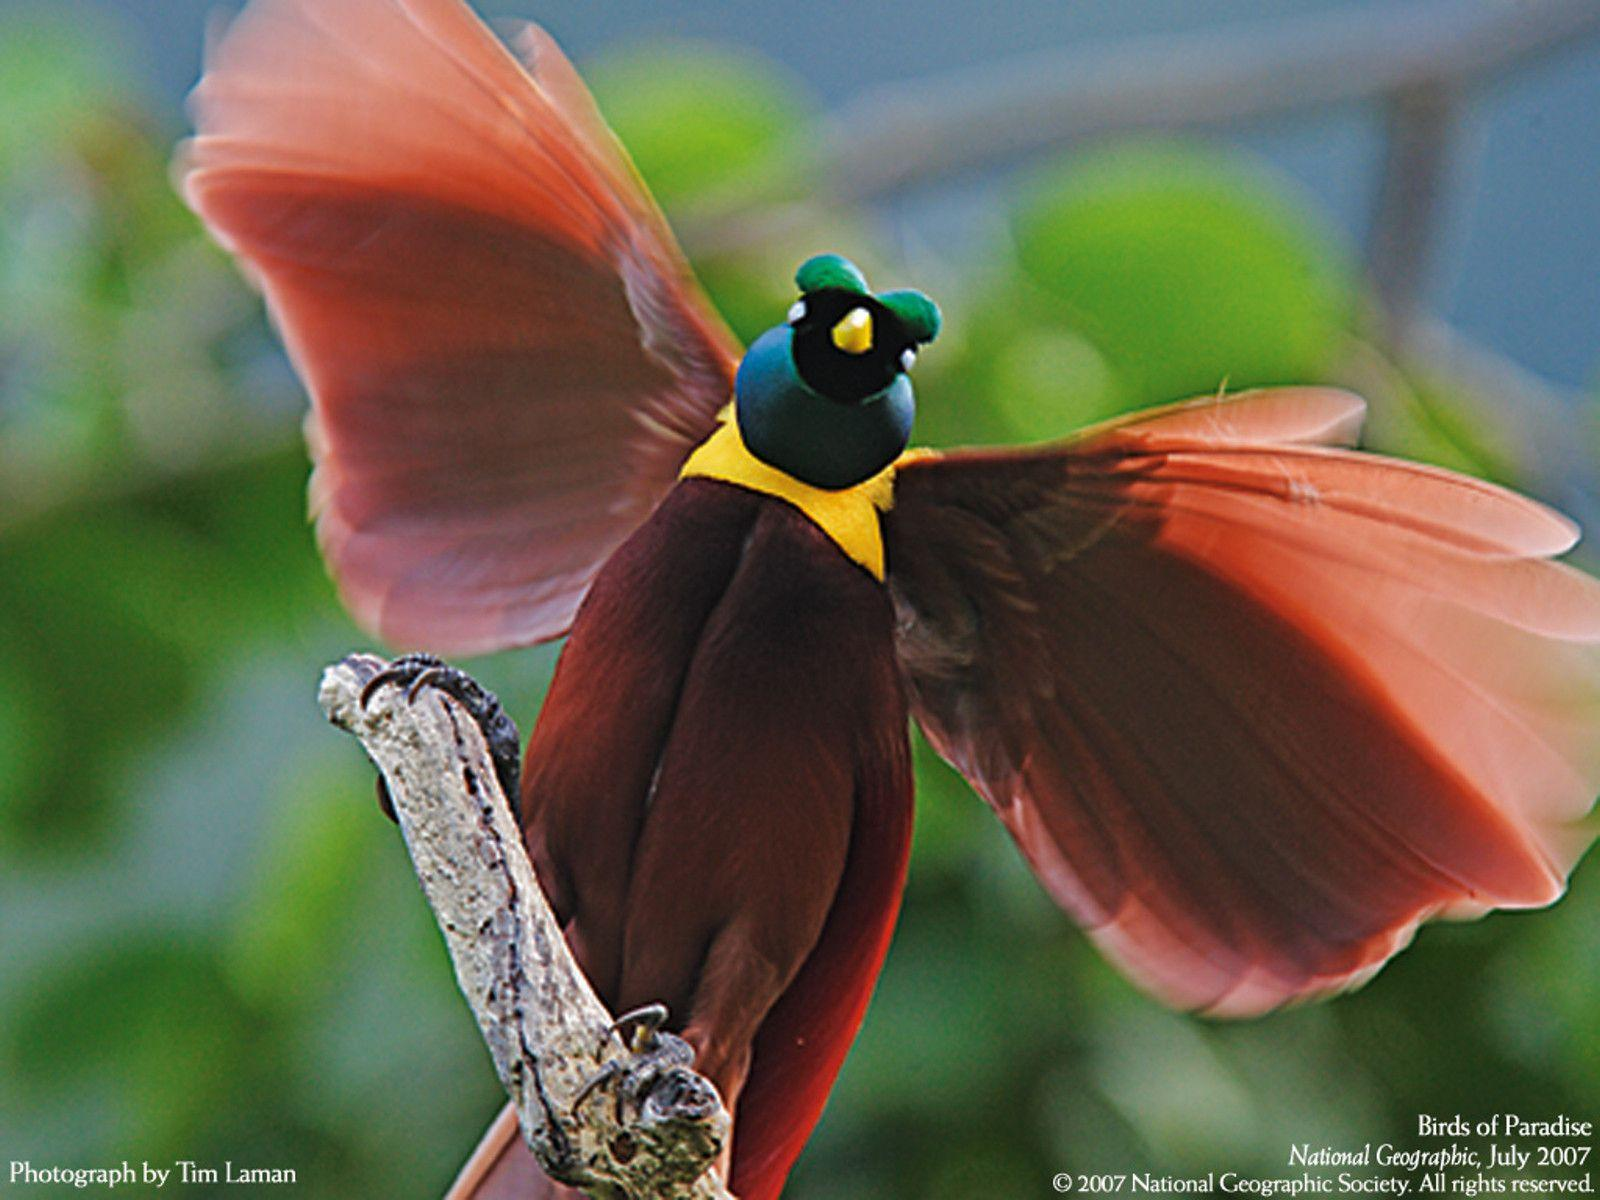 Wallpapers birds of paradise wallpaper cave - Hd images of birds of paradise ...